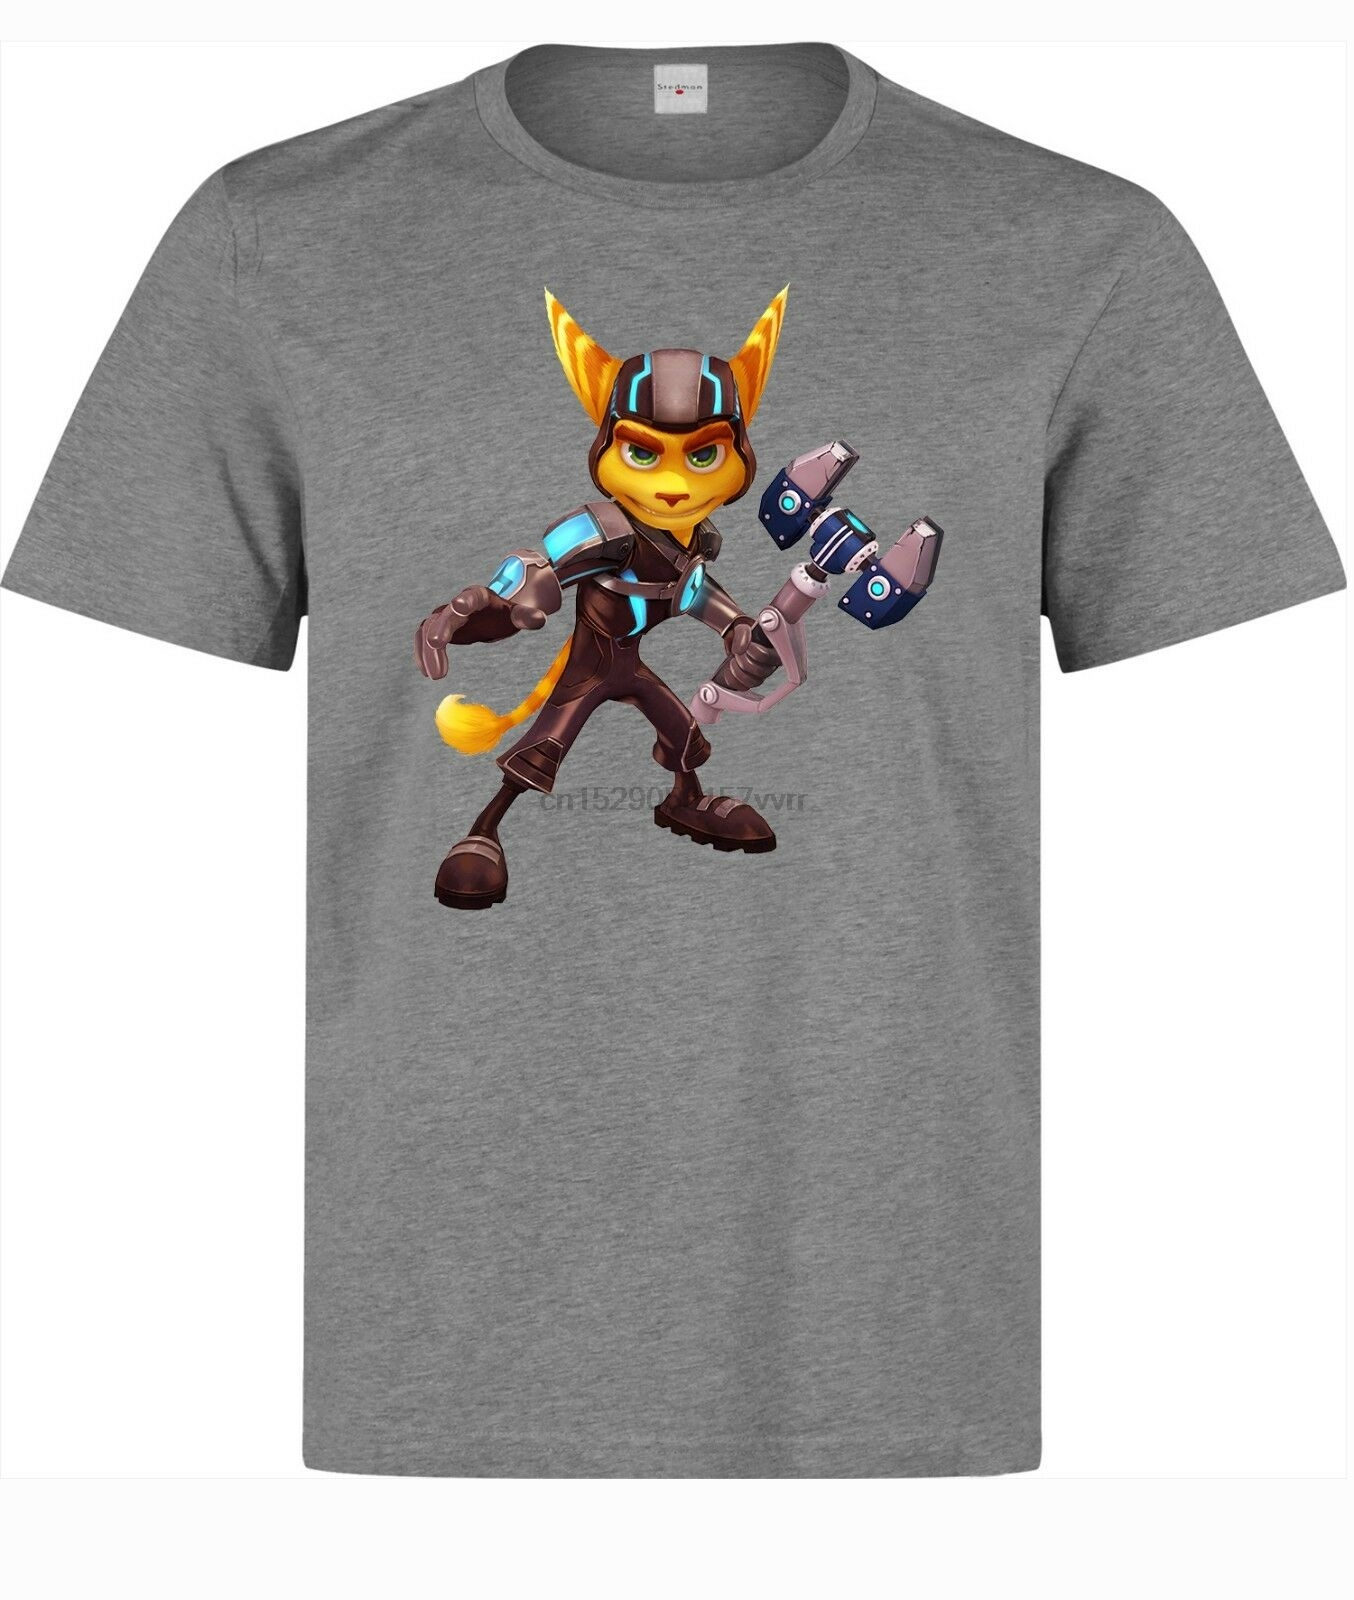 Ratchet And Clank Game Character Ratchet men (woman available) grey t shirt image